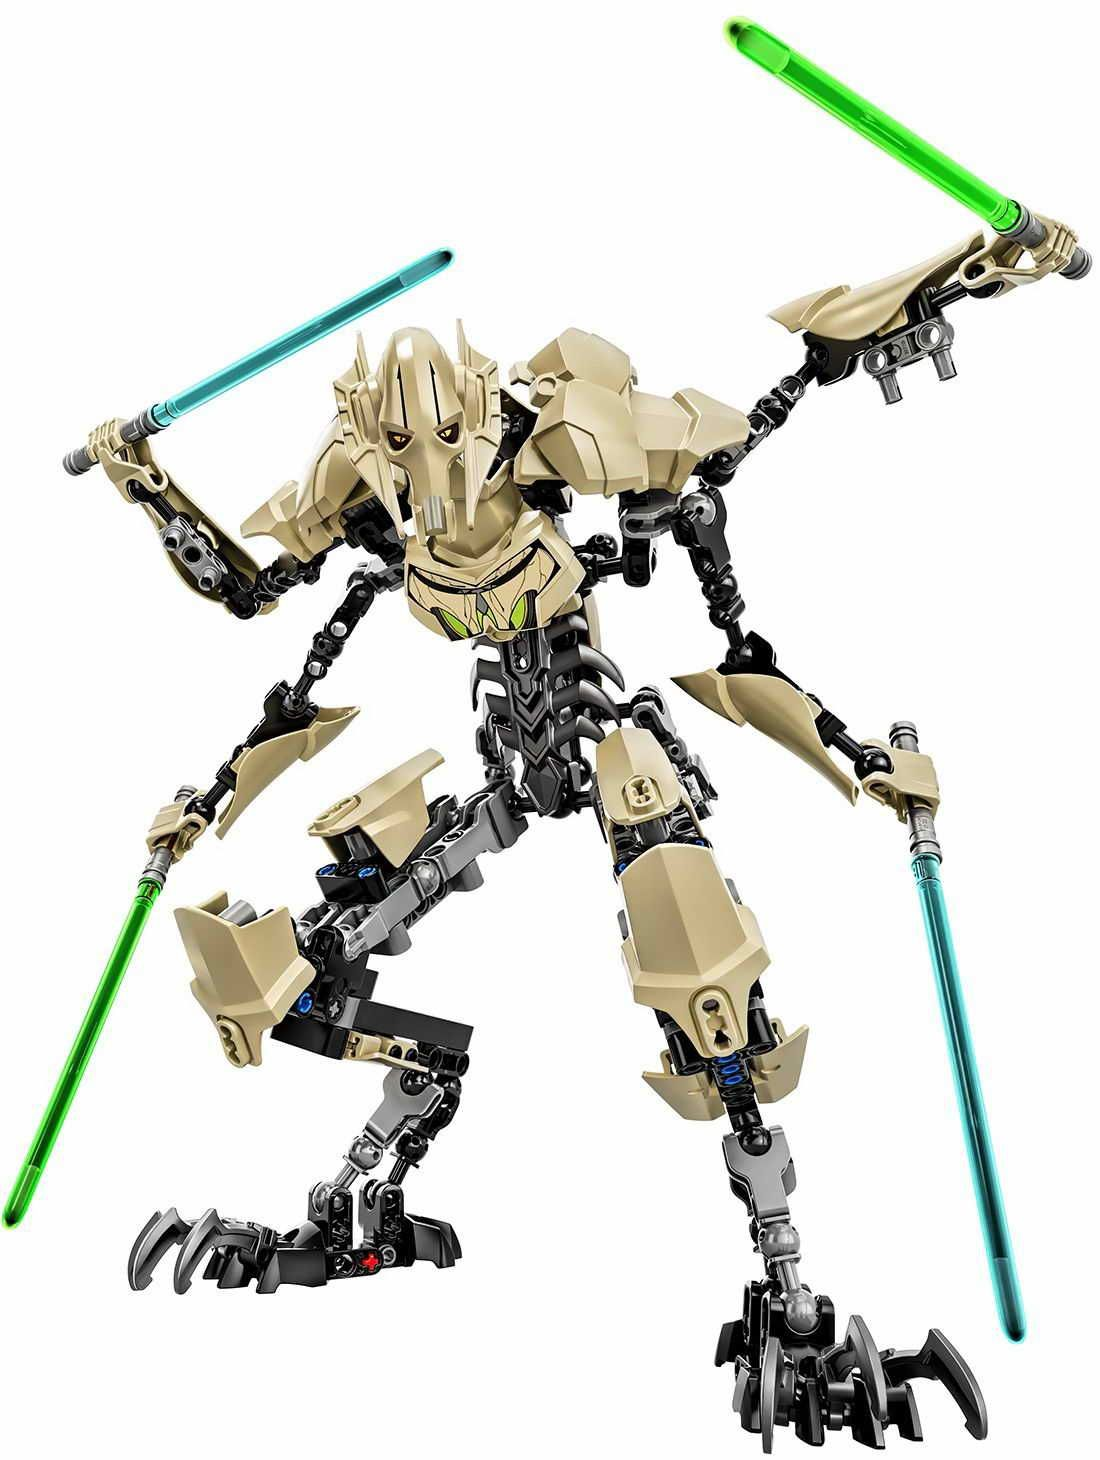 lego-star-wars-general-grievous-lego-75112